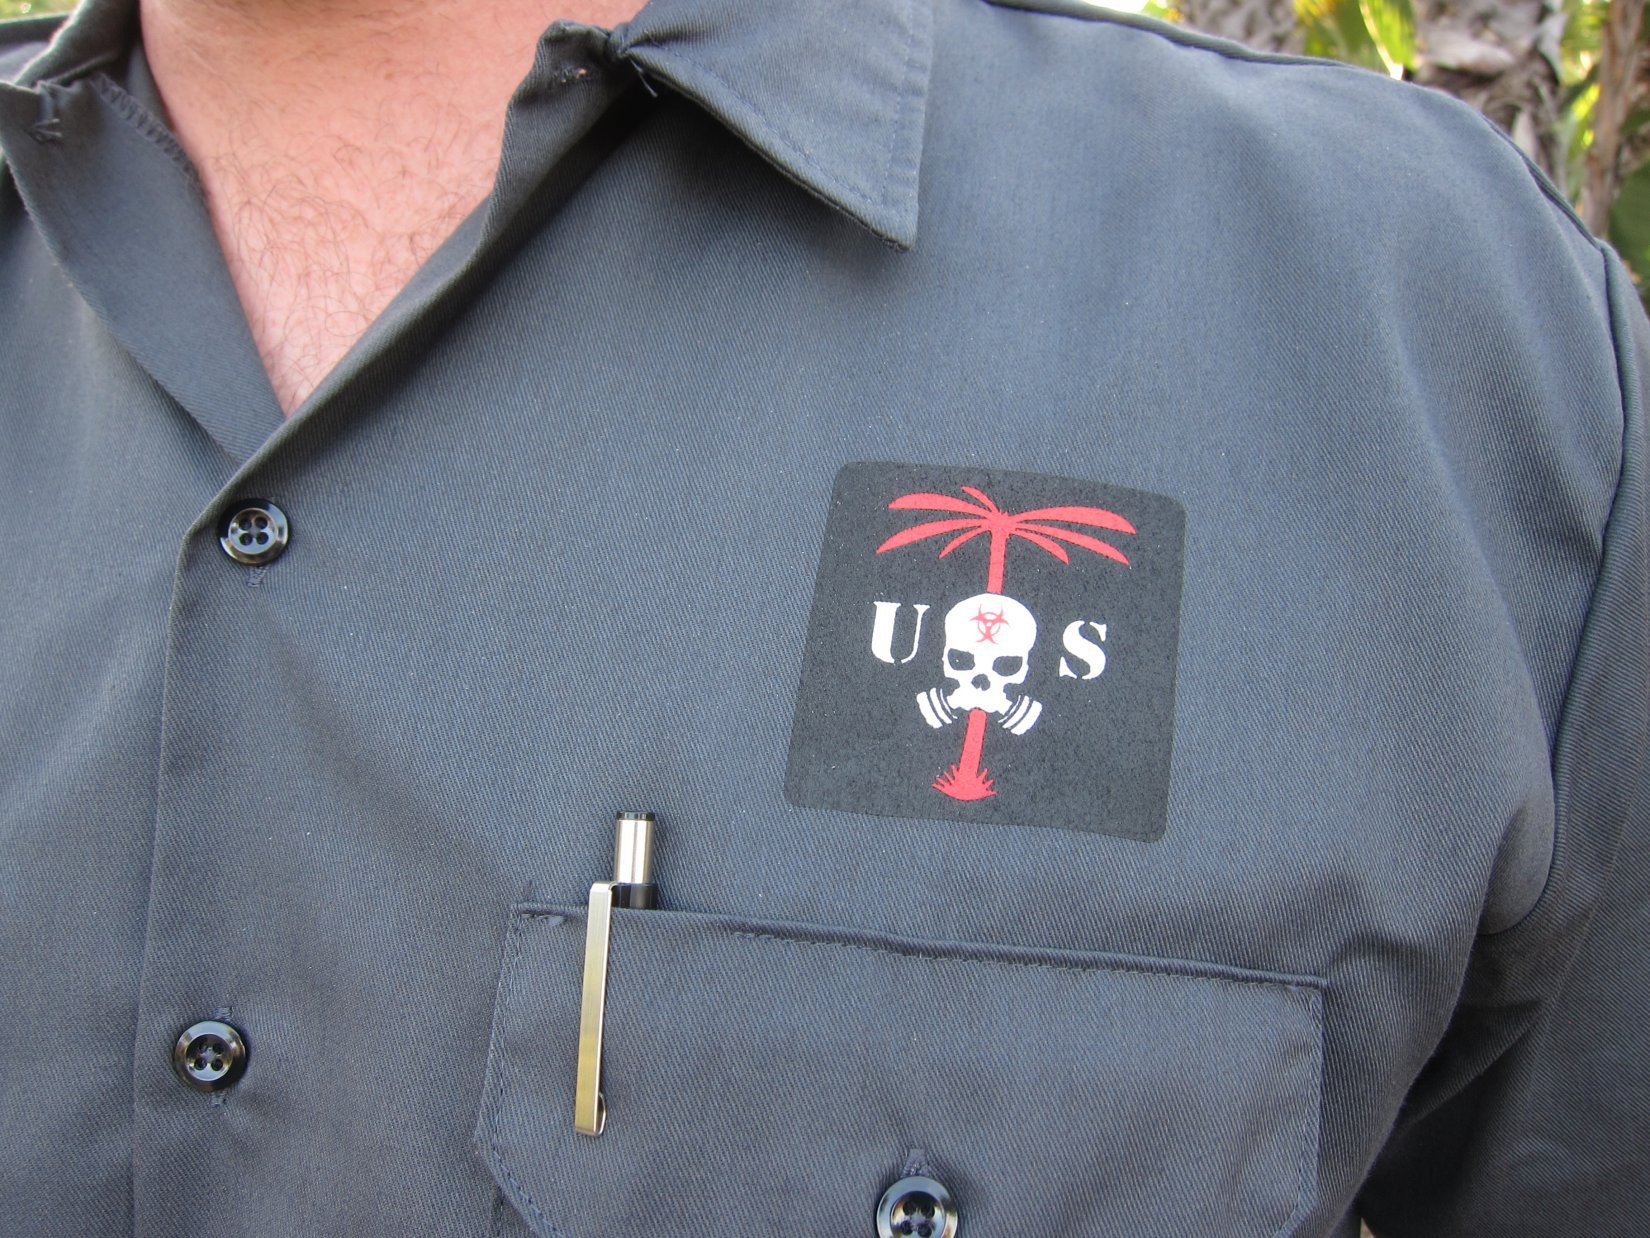 US Palm ZERT Team Logo Shirt HALO Counterterrorism Summit 2012 DefenseReview.com DR 1 US Palm Draco Hardened Backpack (HBP Tactical Pack)/Multi Platform Attack Rack (MPAR) Tactical Armor Plate Carrier (Body Armor) System with Enhanced Harness System (EHS) Collar: Meet the Agile Combat System (ACS) (Video!)